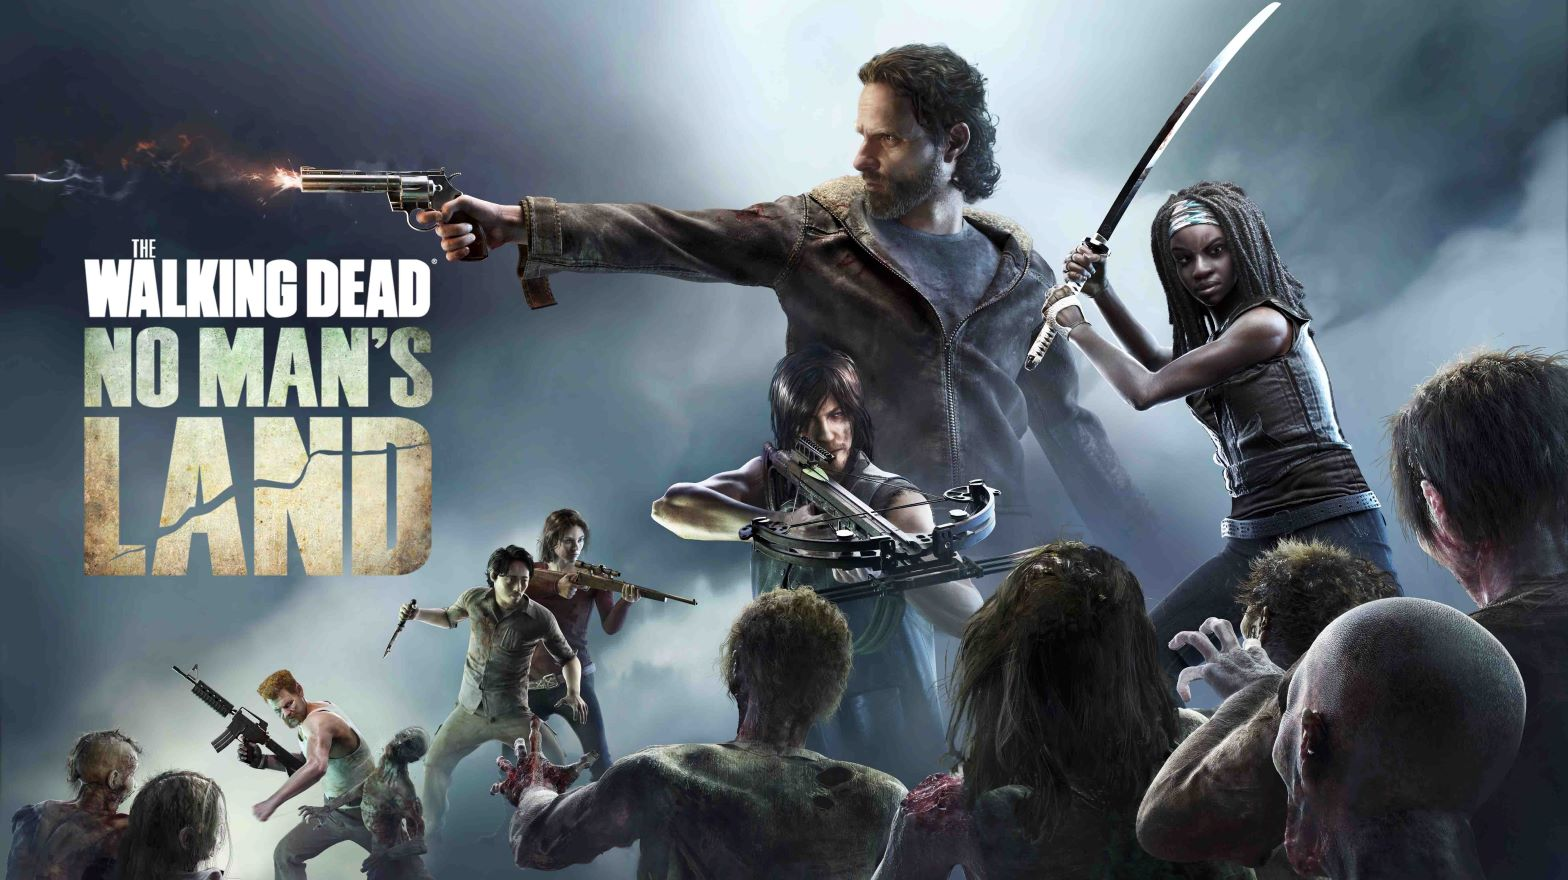 The Walking Dead No Man's Land poster art